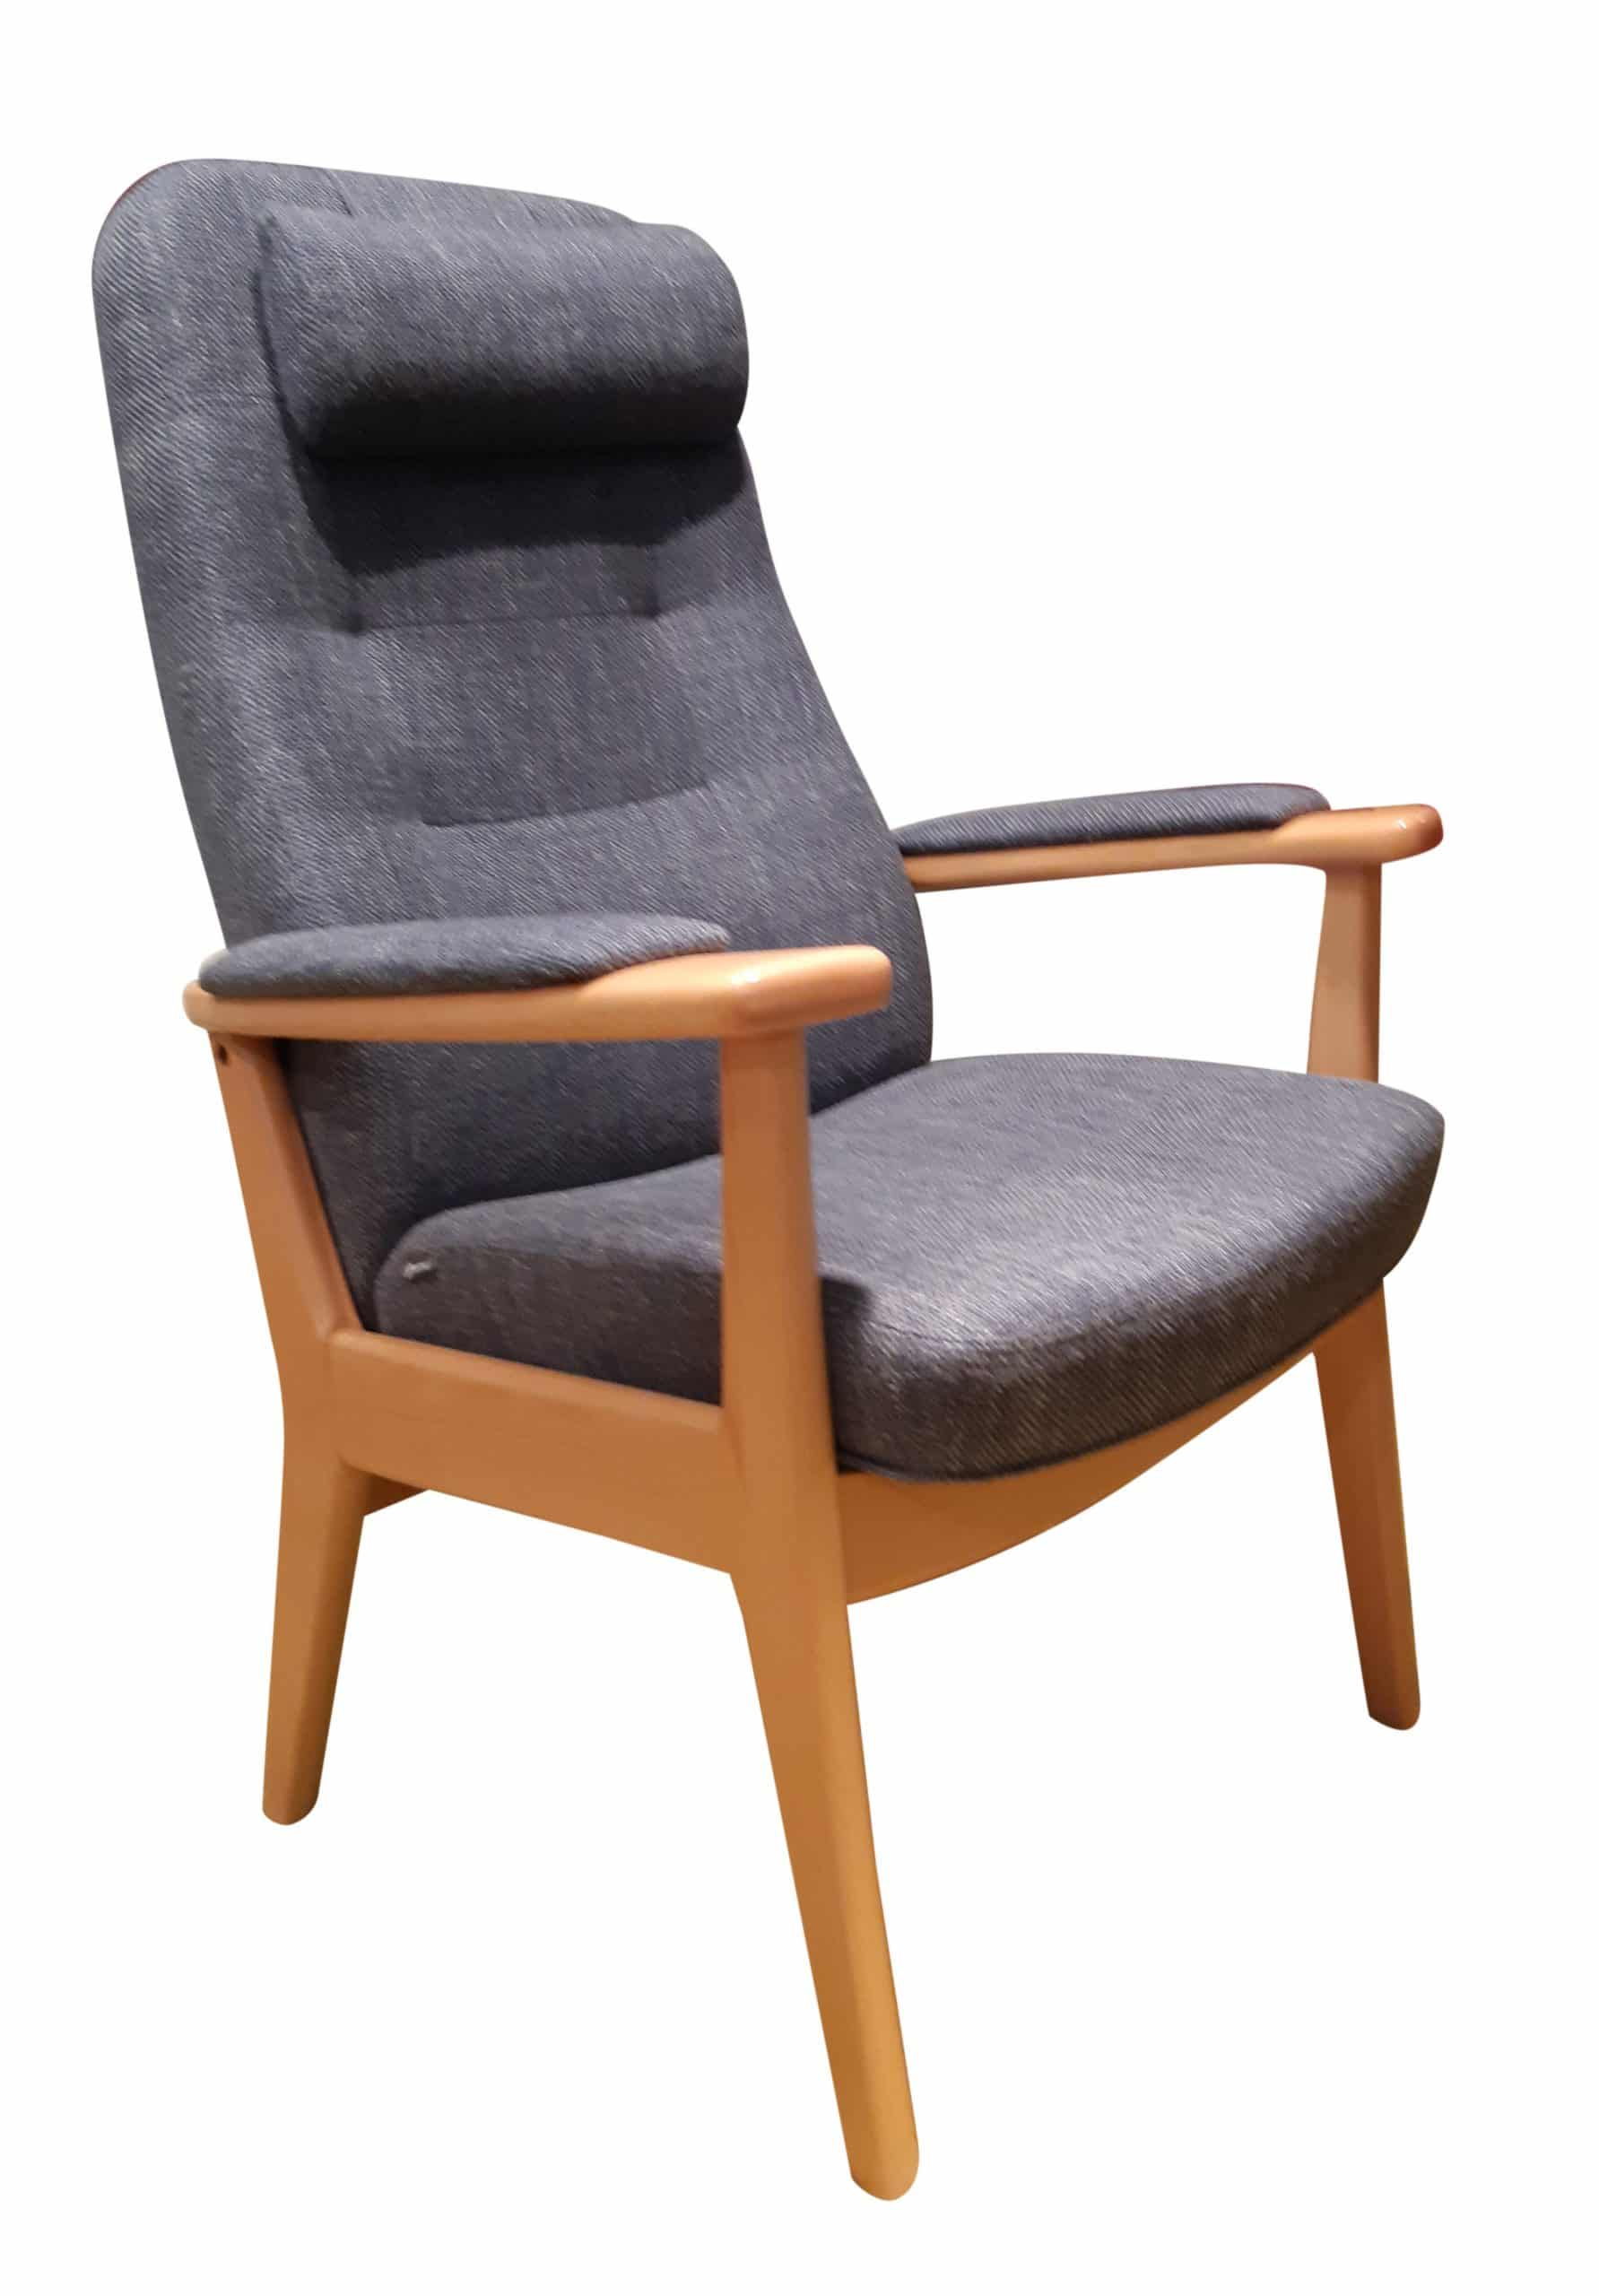 Fauteuil Farstrup F10 1 Scaled